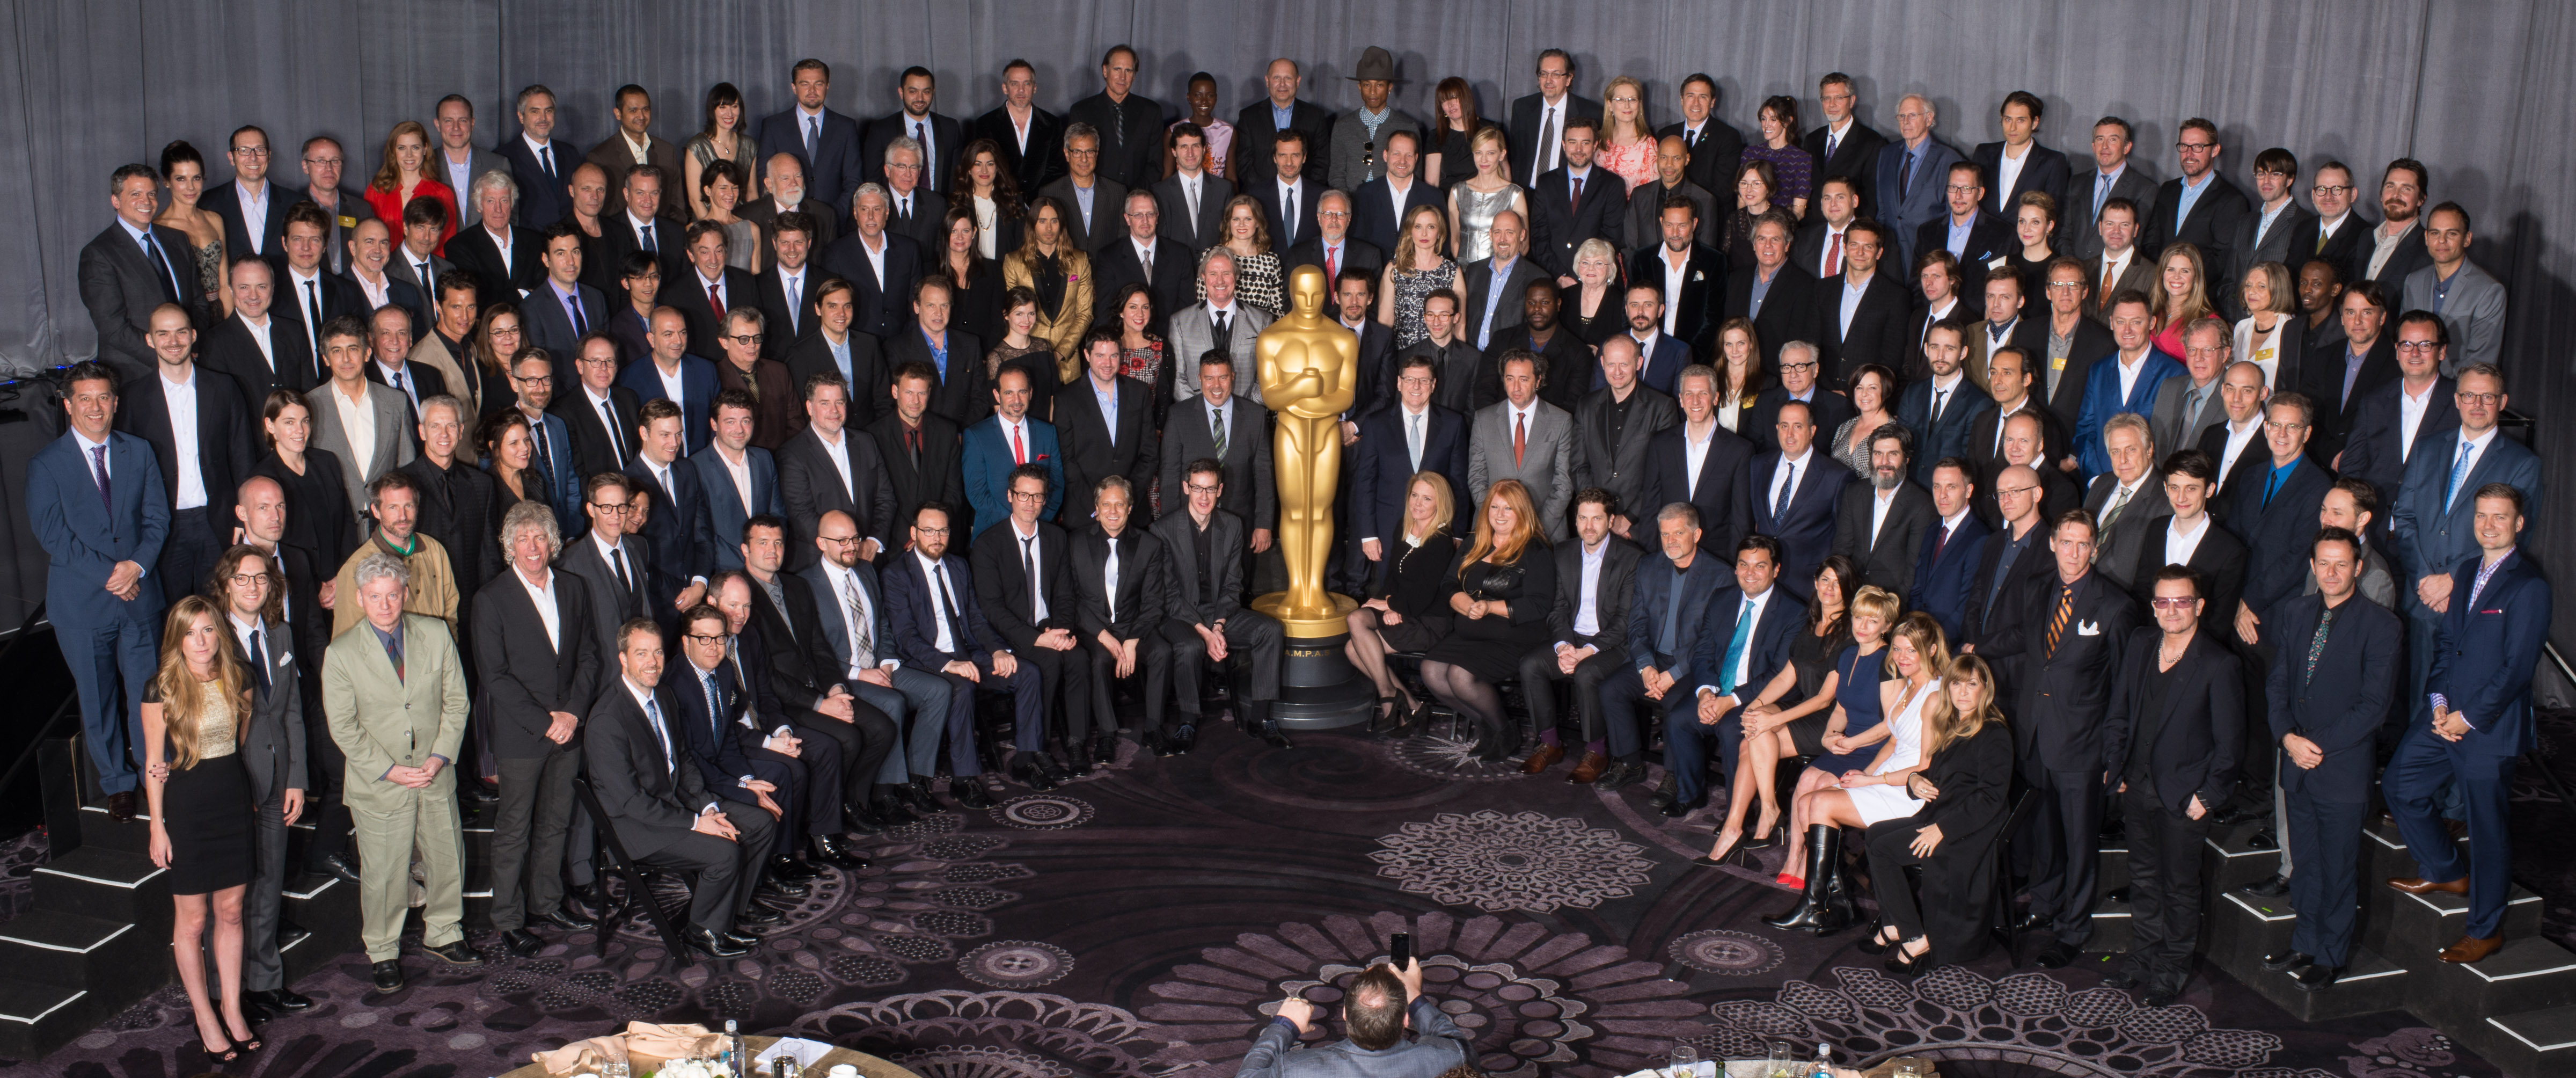 academy award nominees a record number of academy award nominees more